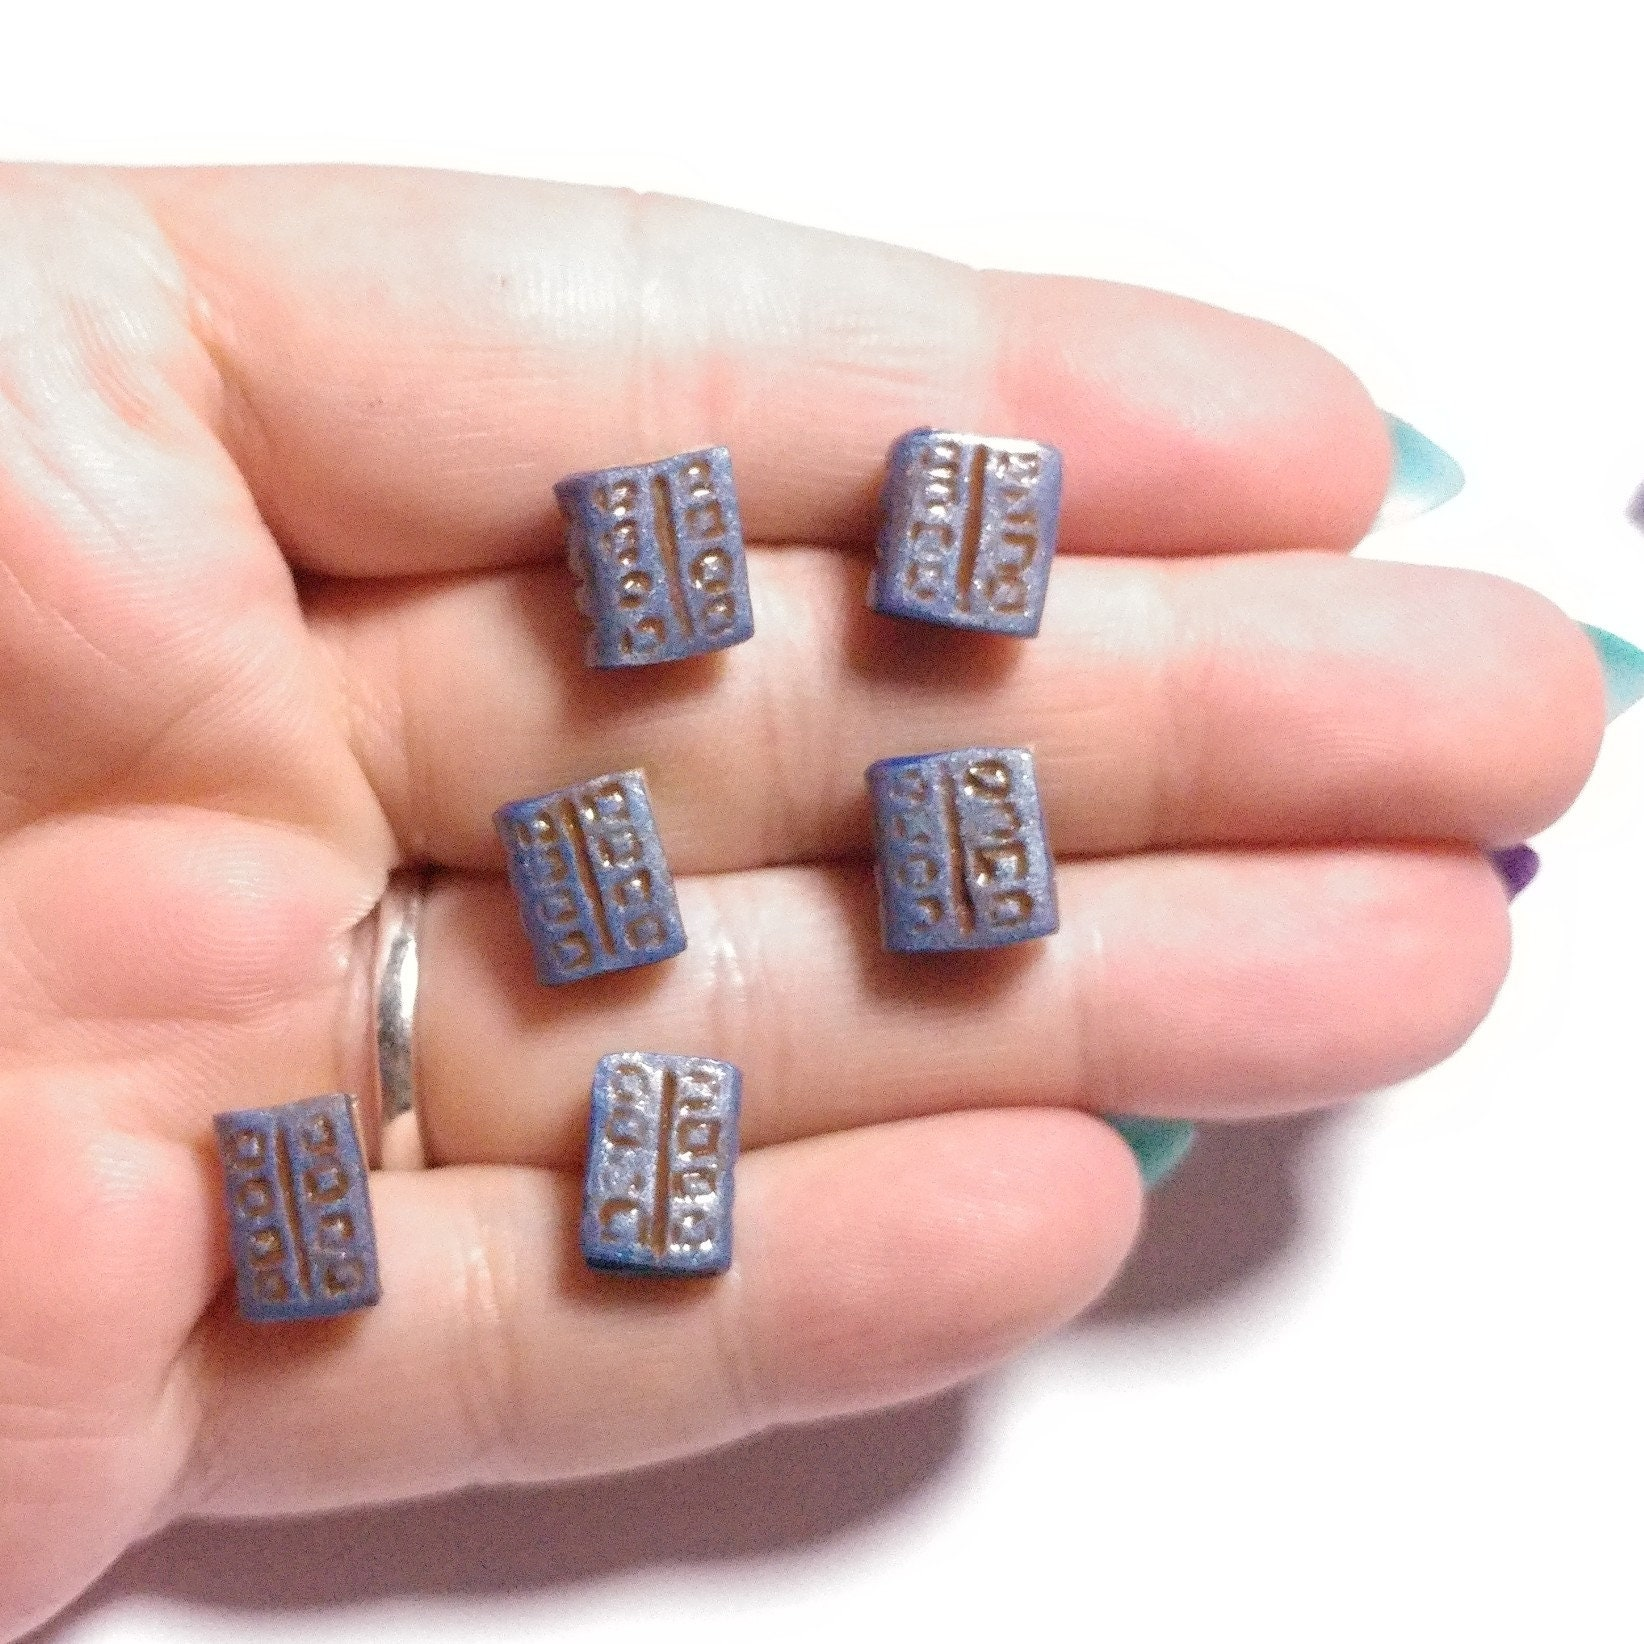 Journal of impossible things earrings doctor who journal   Etsy